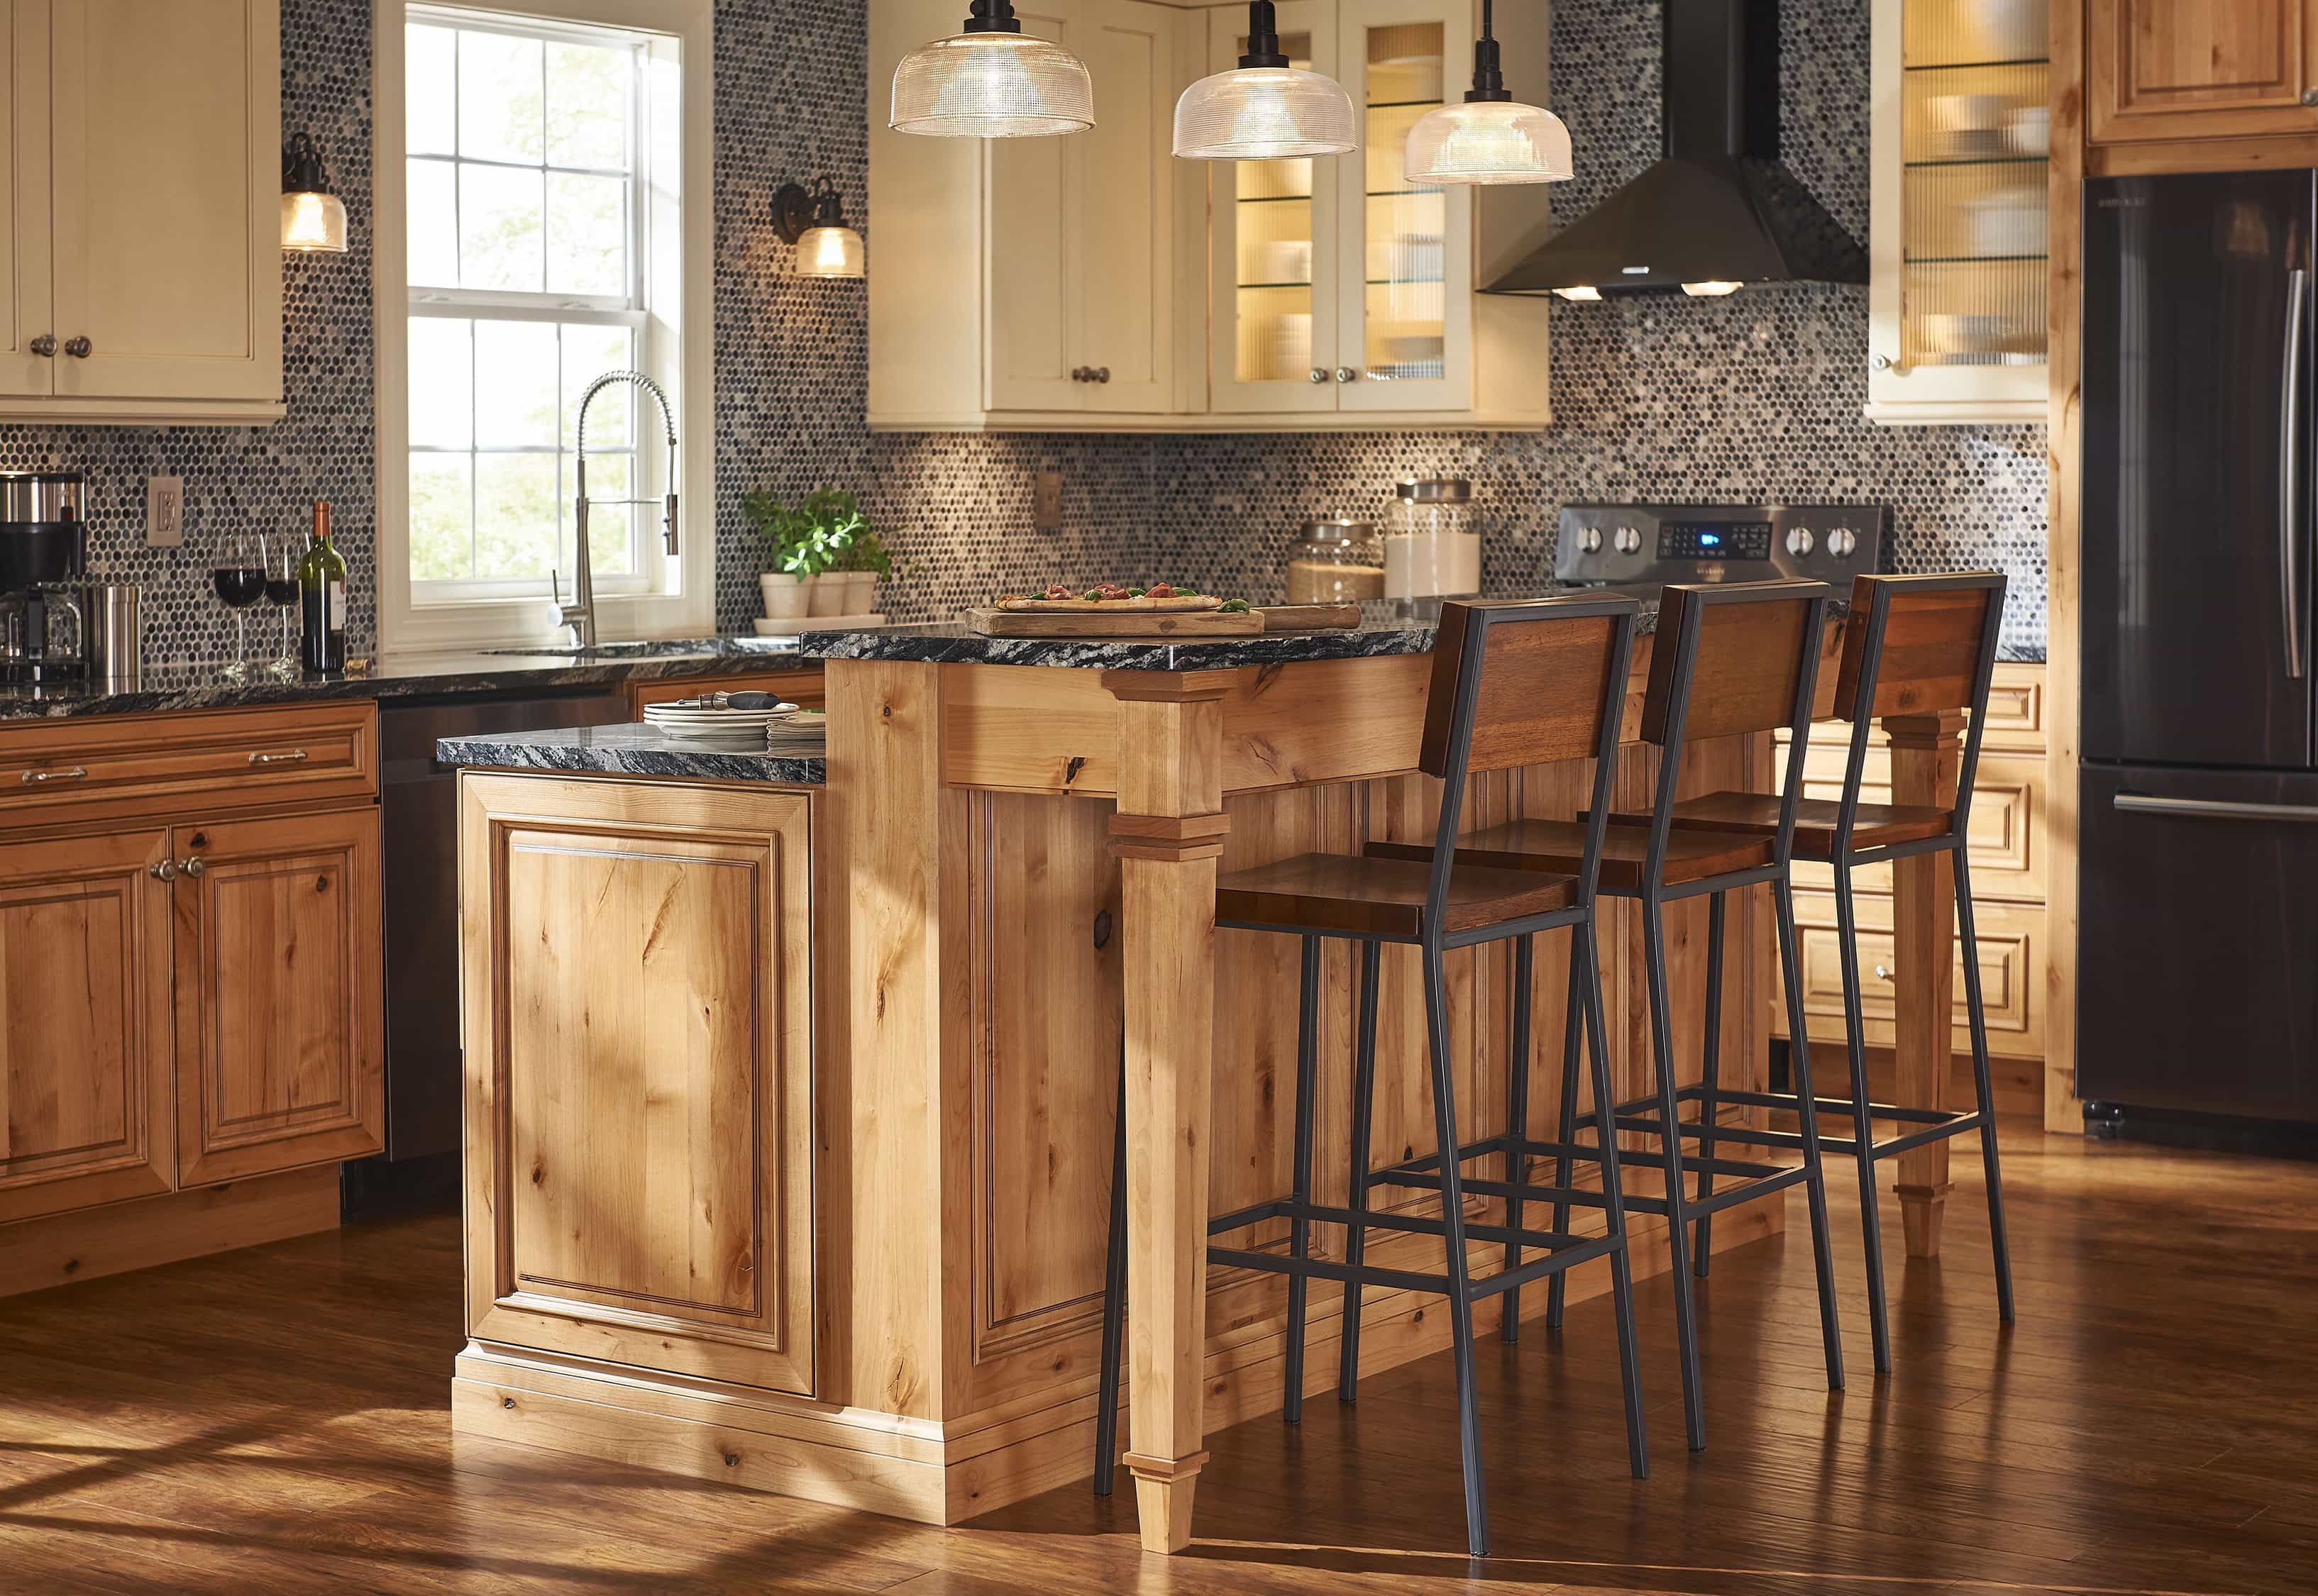 Wooden Kitchen Bar Stools For Classic Nuance (View 3 of 15)